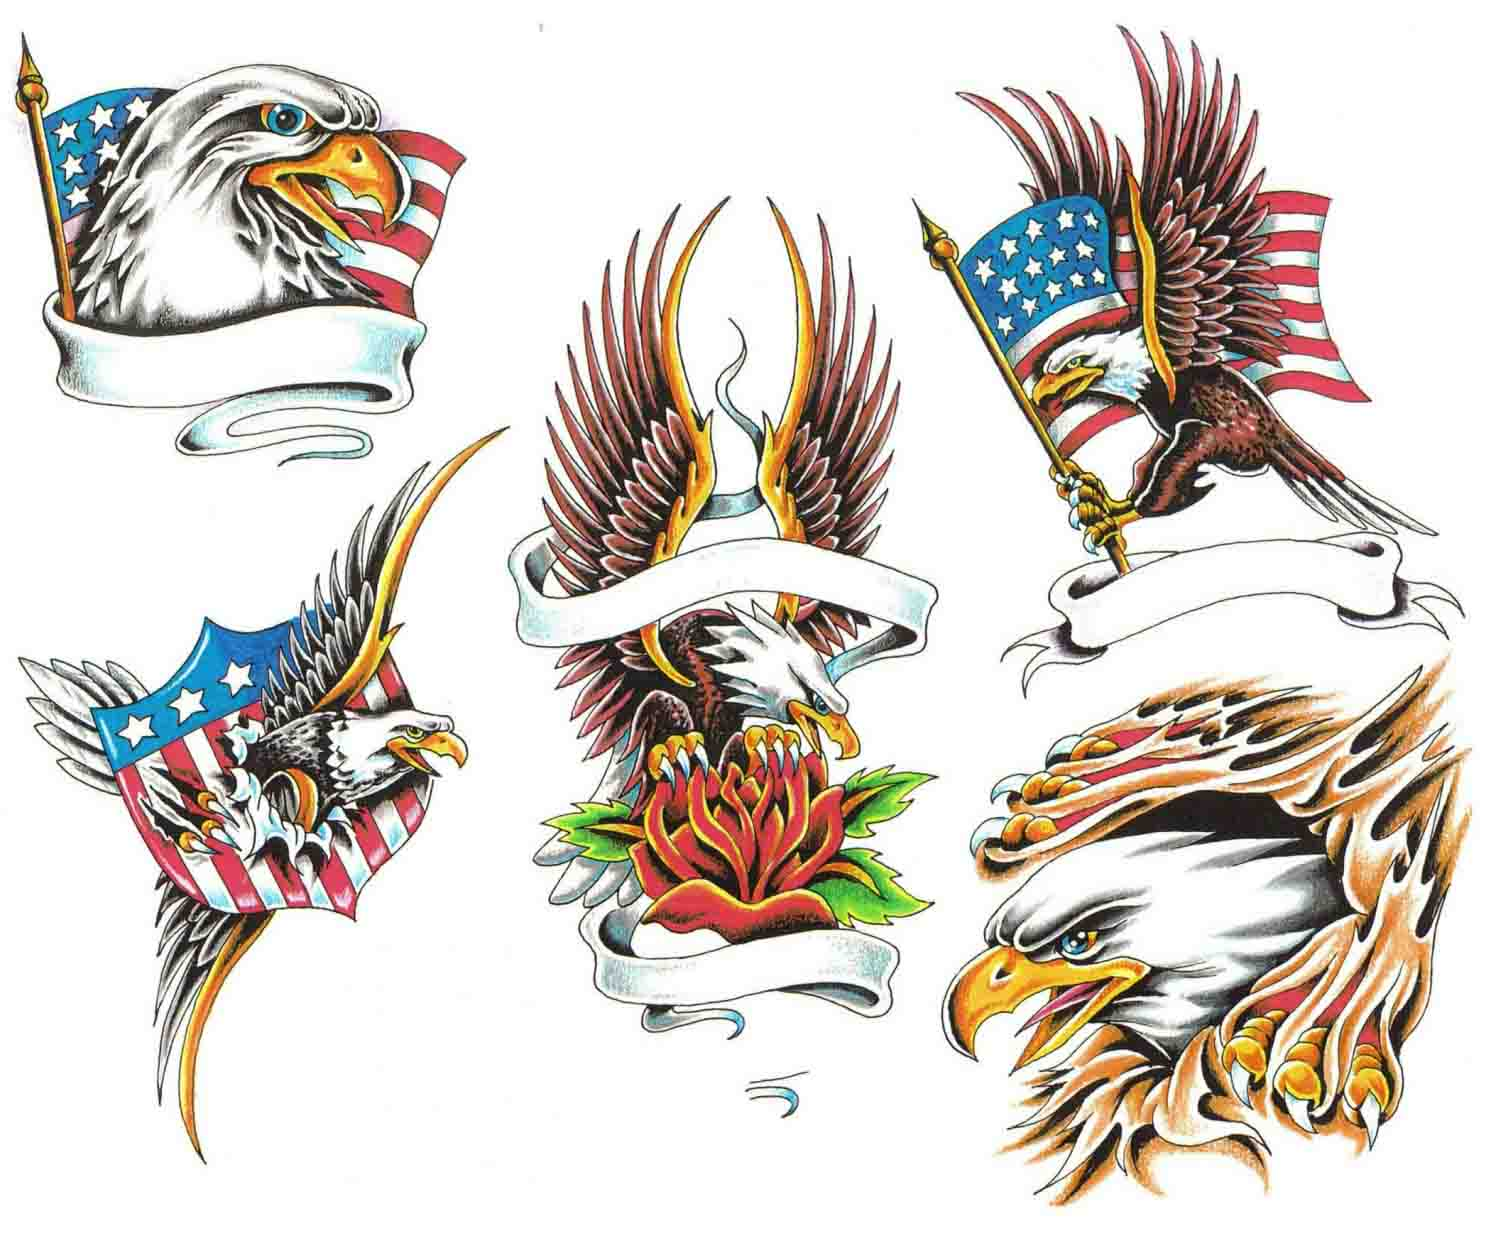 Tattooing Design: Attraction Of Eagle Tattoos Designs